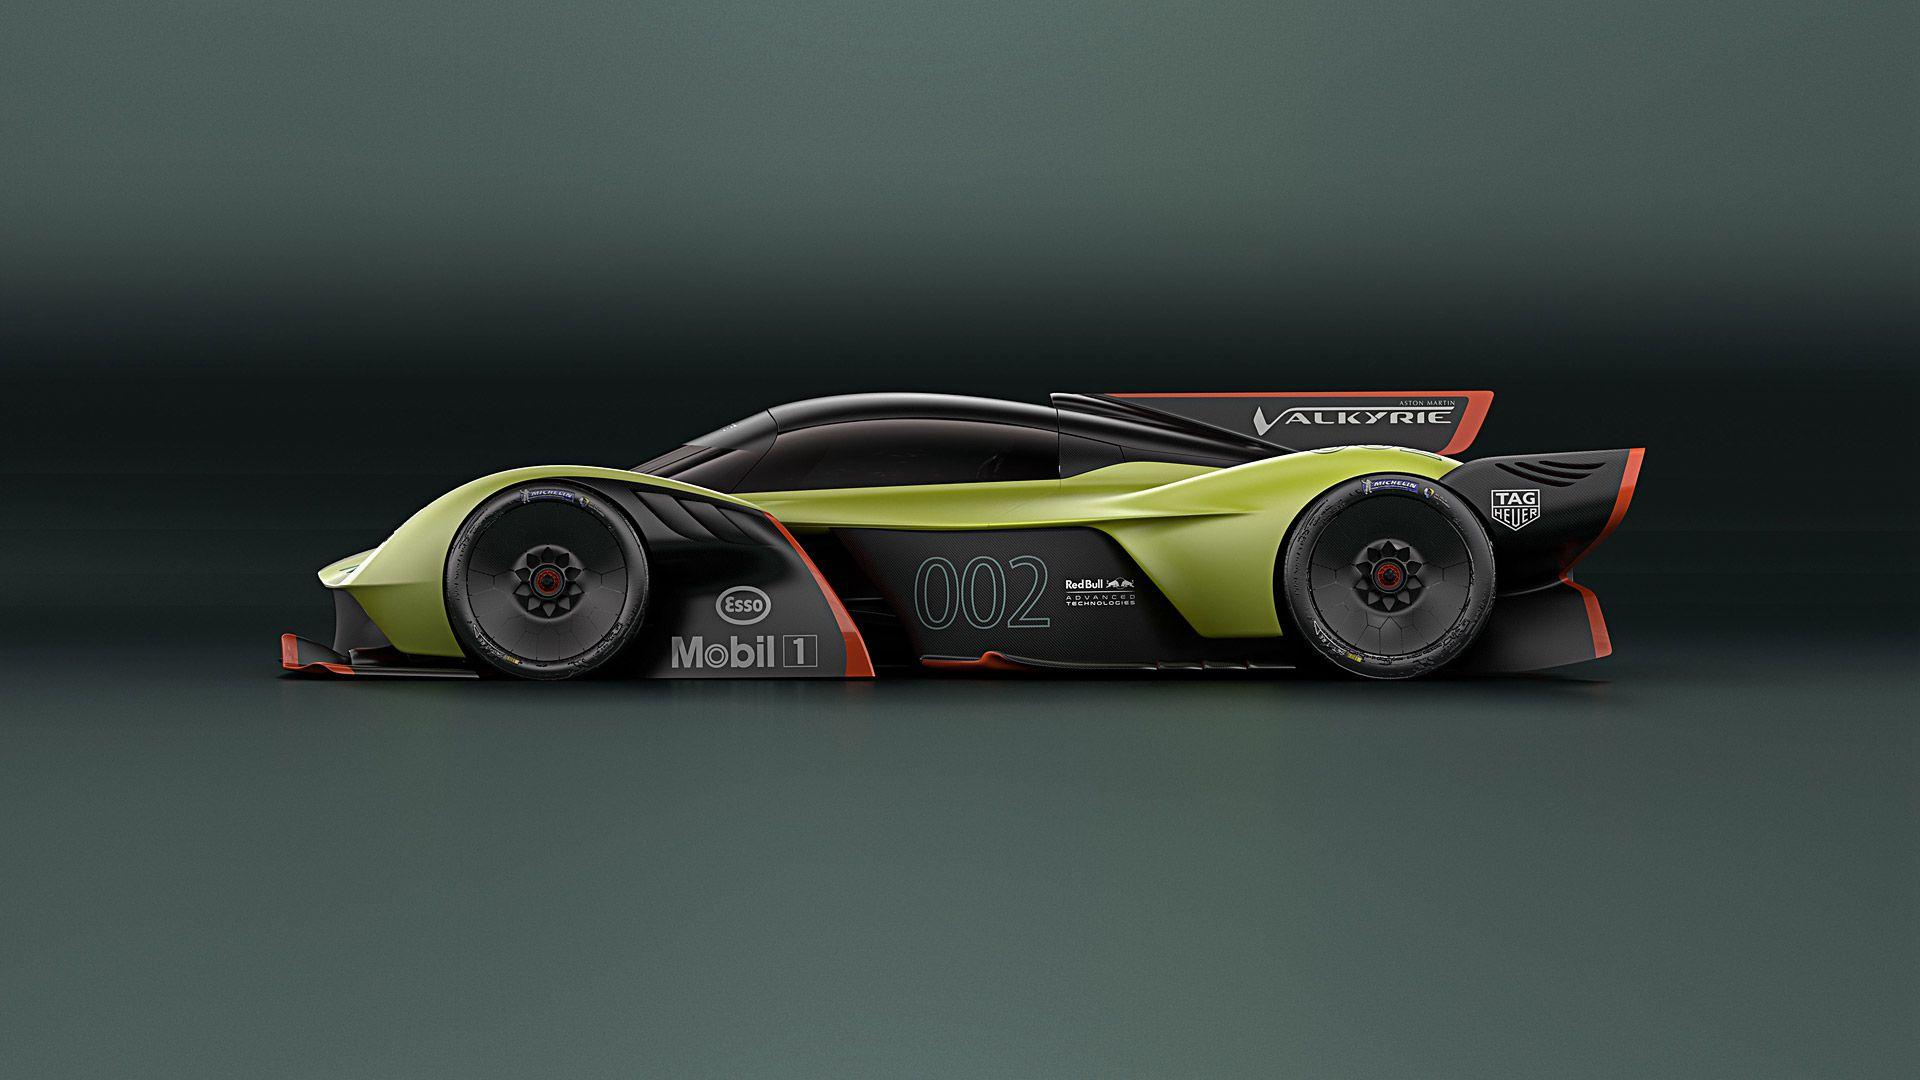 Aston Martin Valkyrie Wallpapers Wallpaper Cave